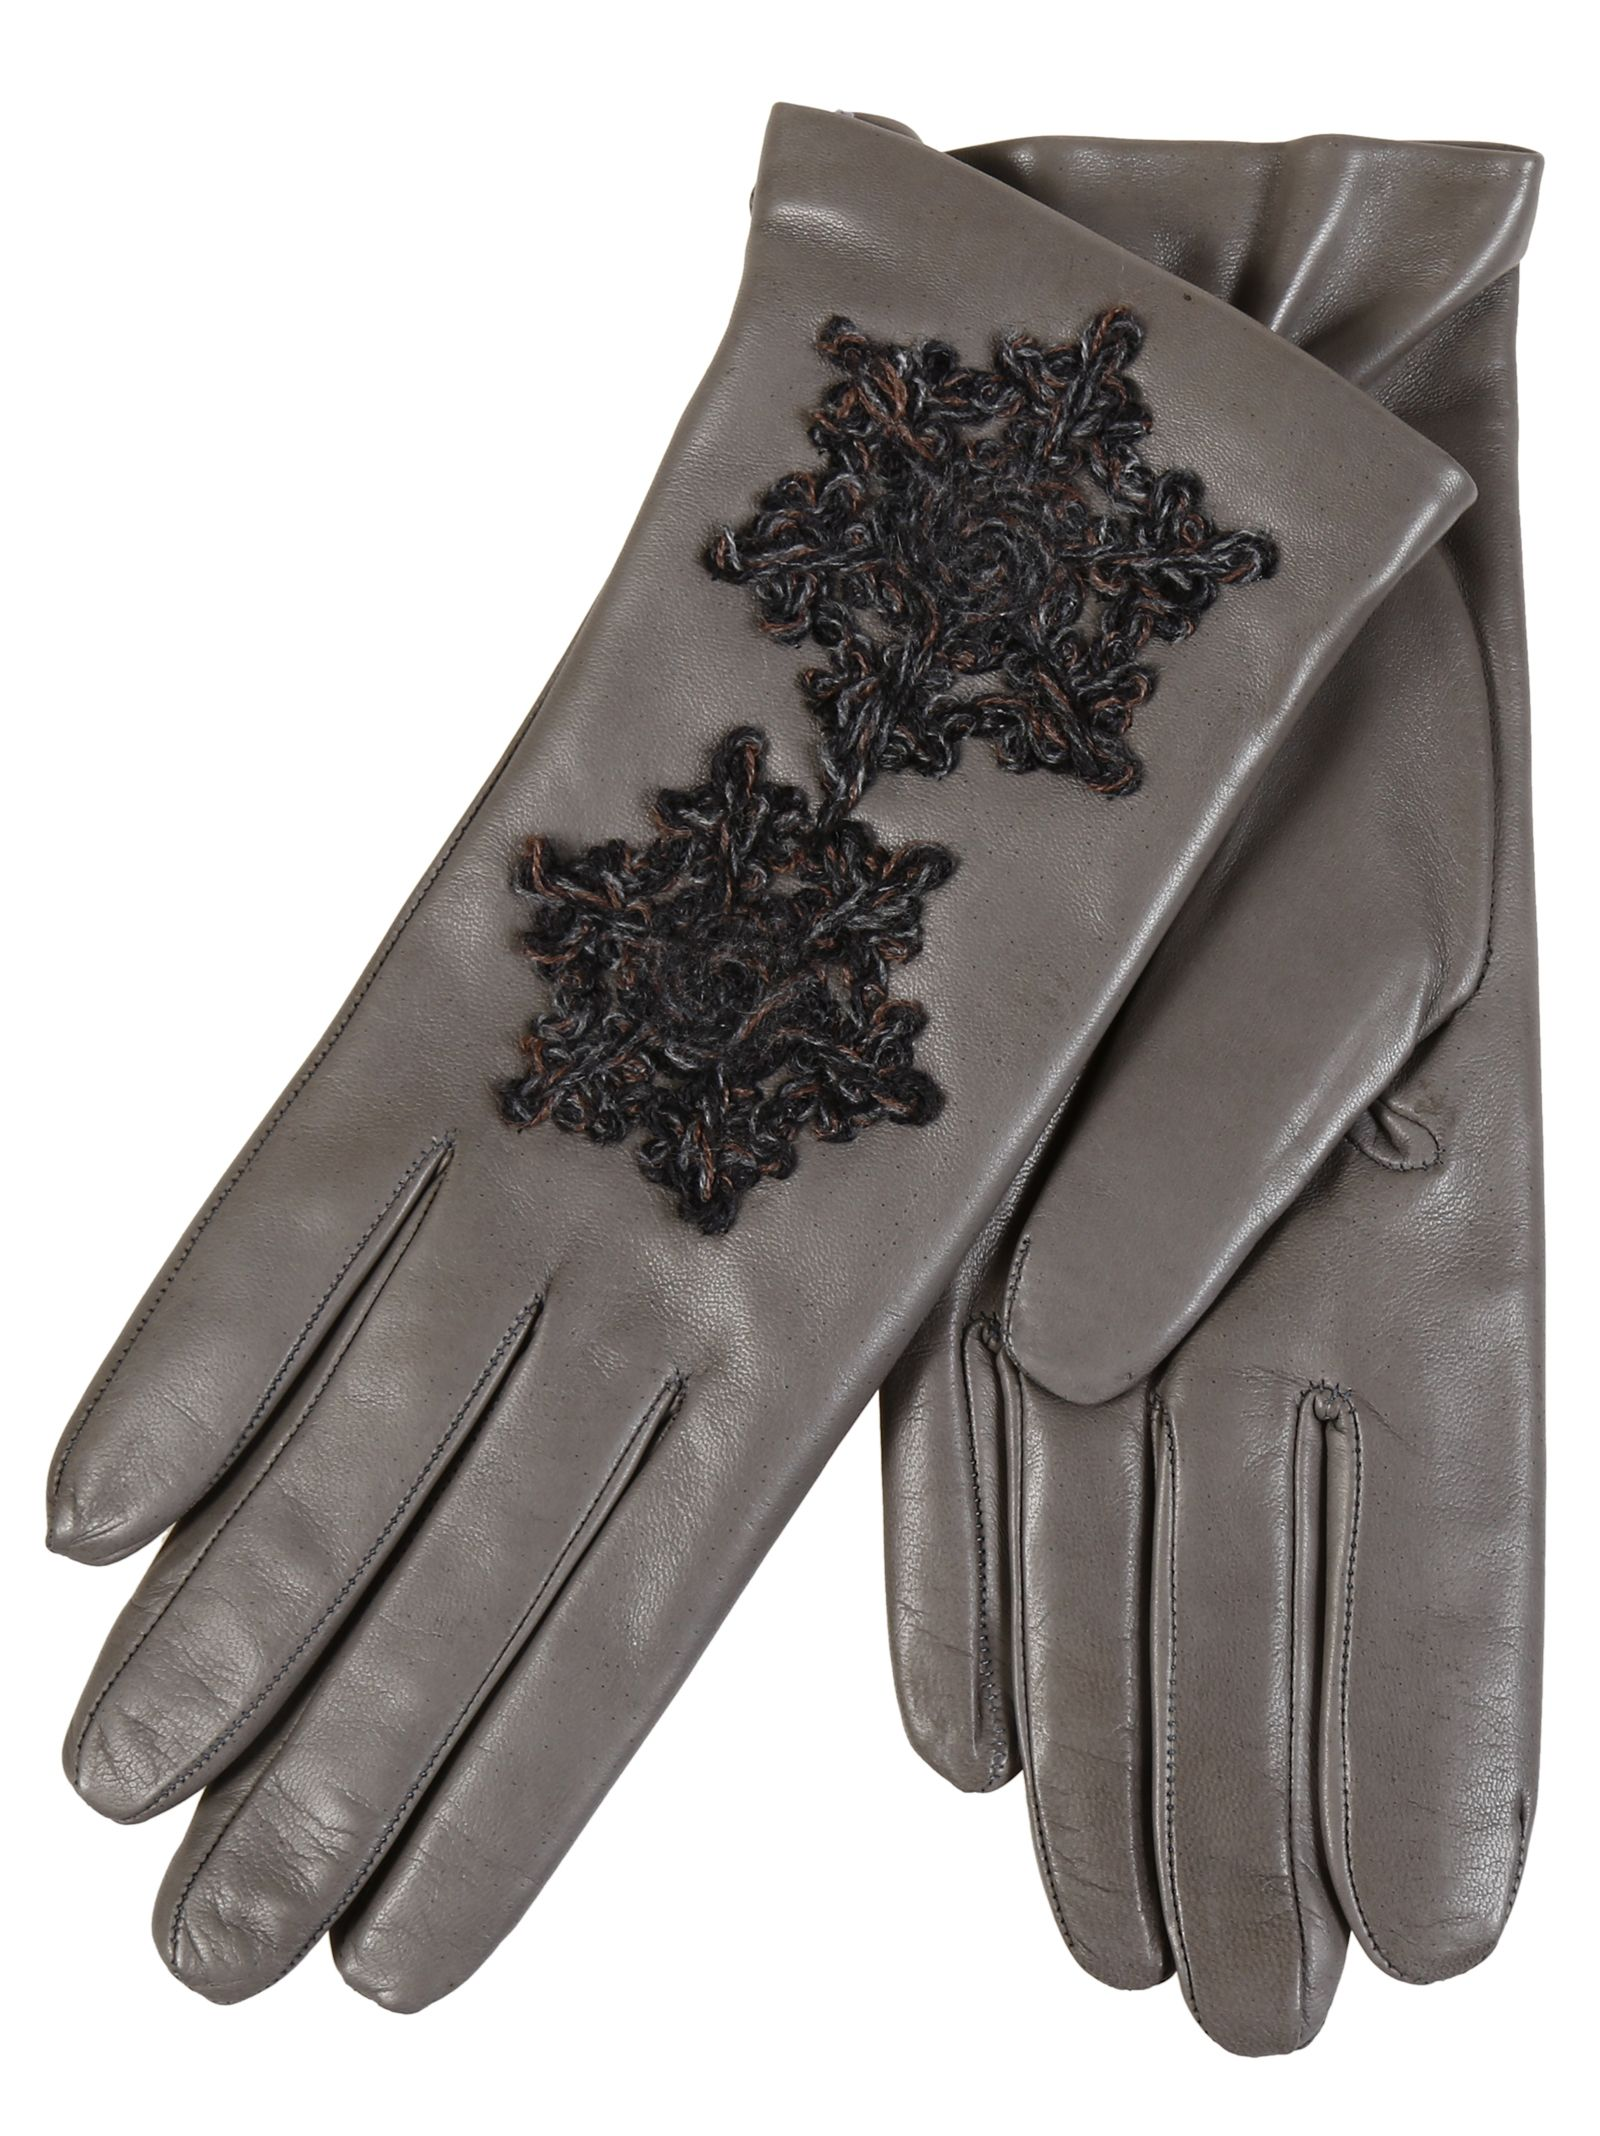 Restelli Nappa Leather Gloves